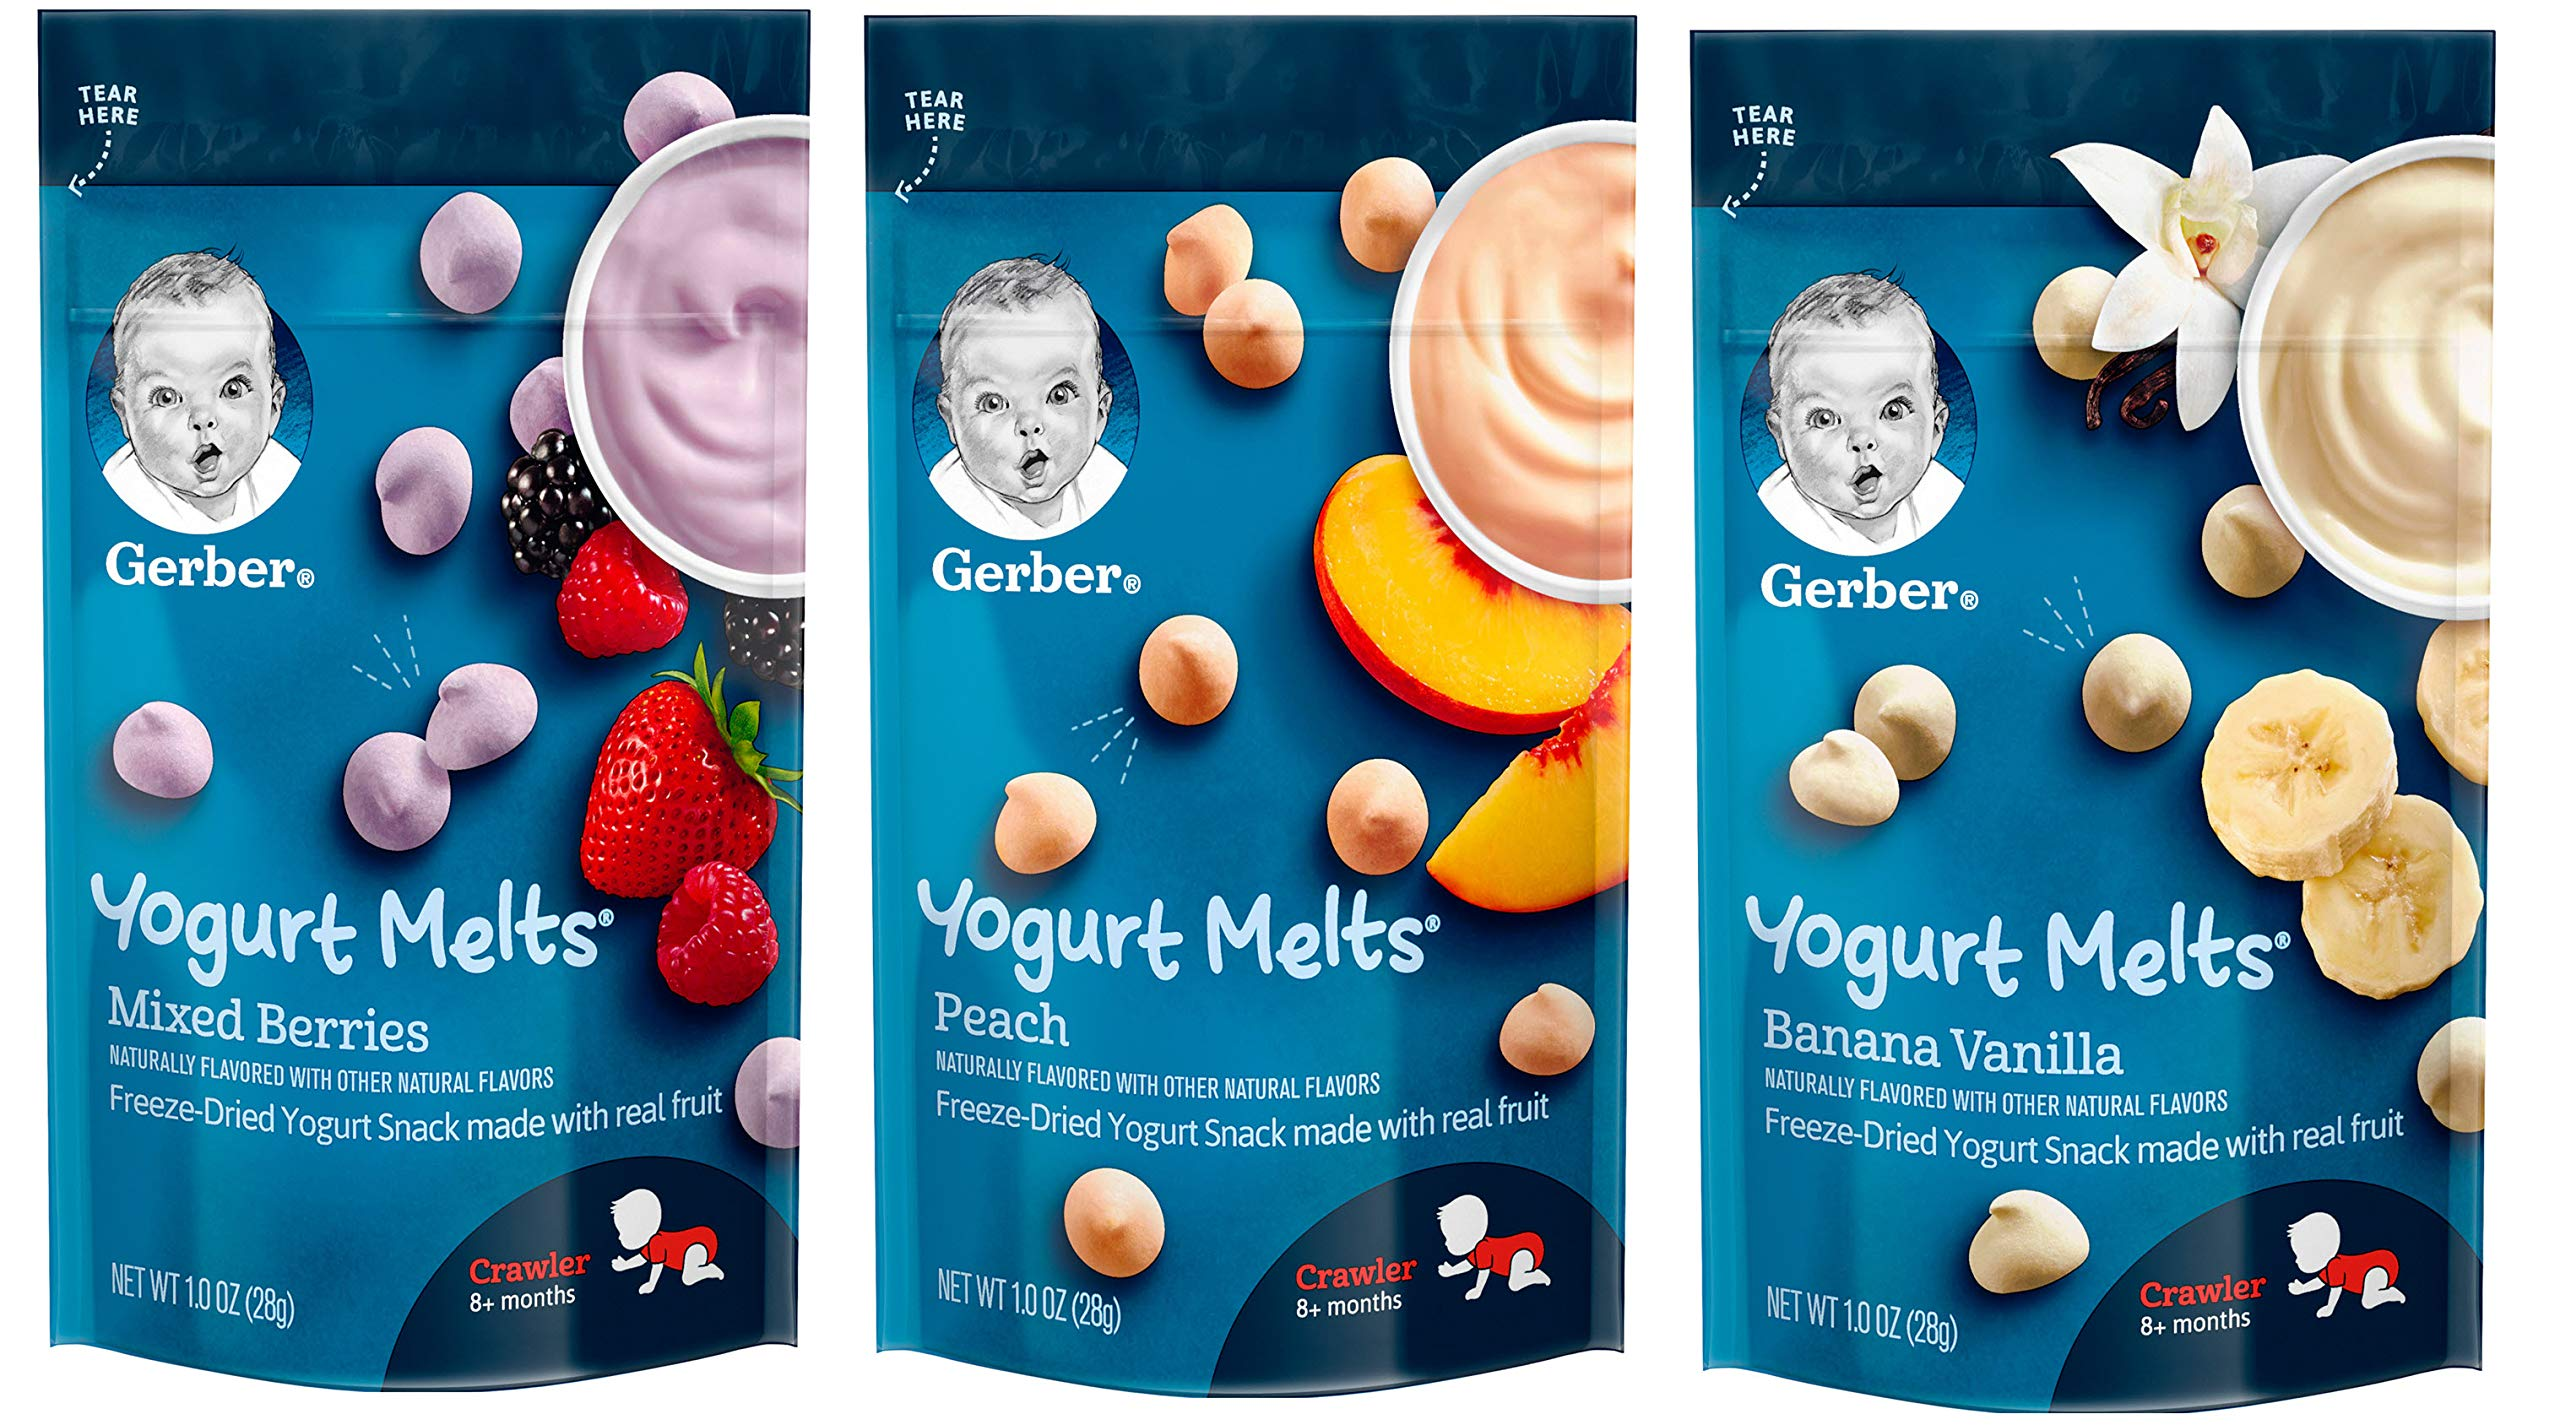 Gerber Graduates Cereal Variety Snack Pack Sampler of Puffs, Yogurt Melts, Lil Crunchies + 1 Snack Catcher; Bundle of 10 by Narrow Path Sales (Image #9)